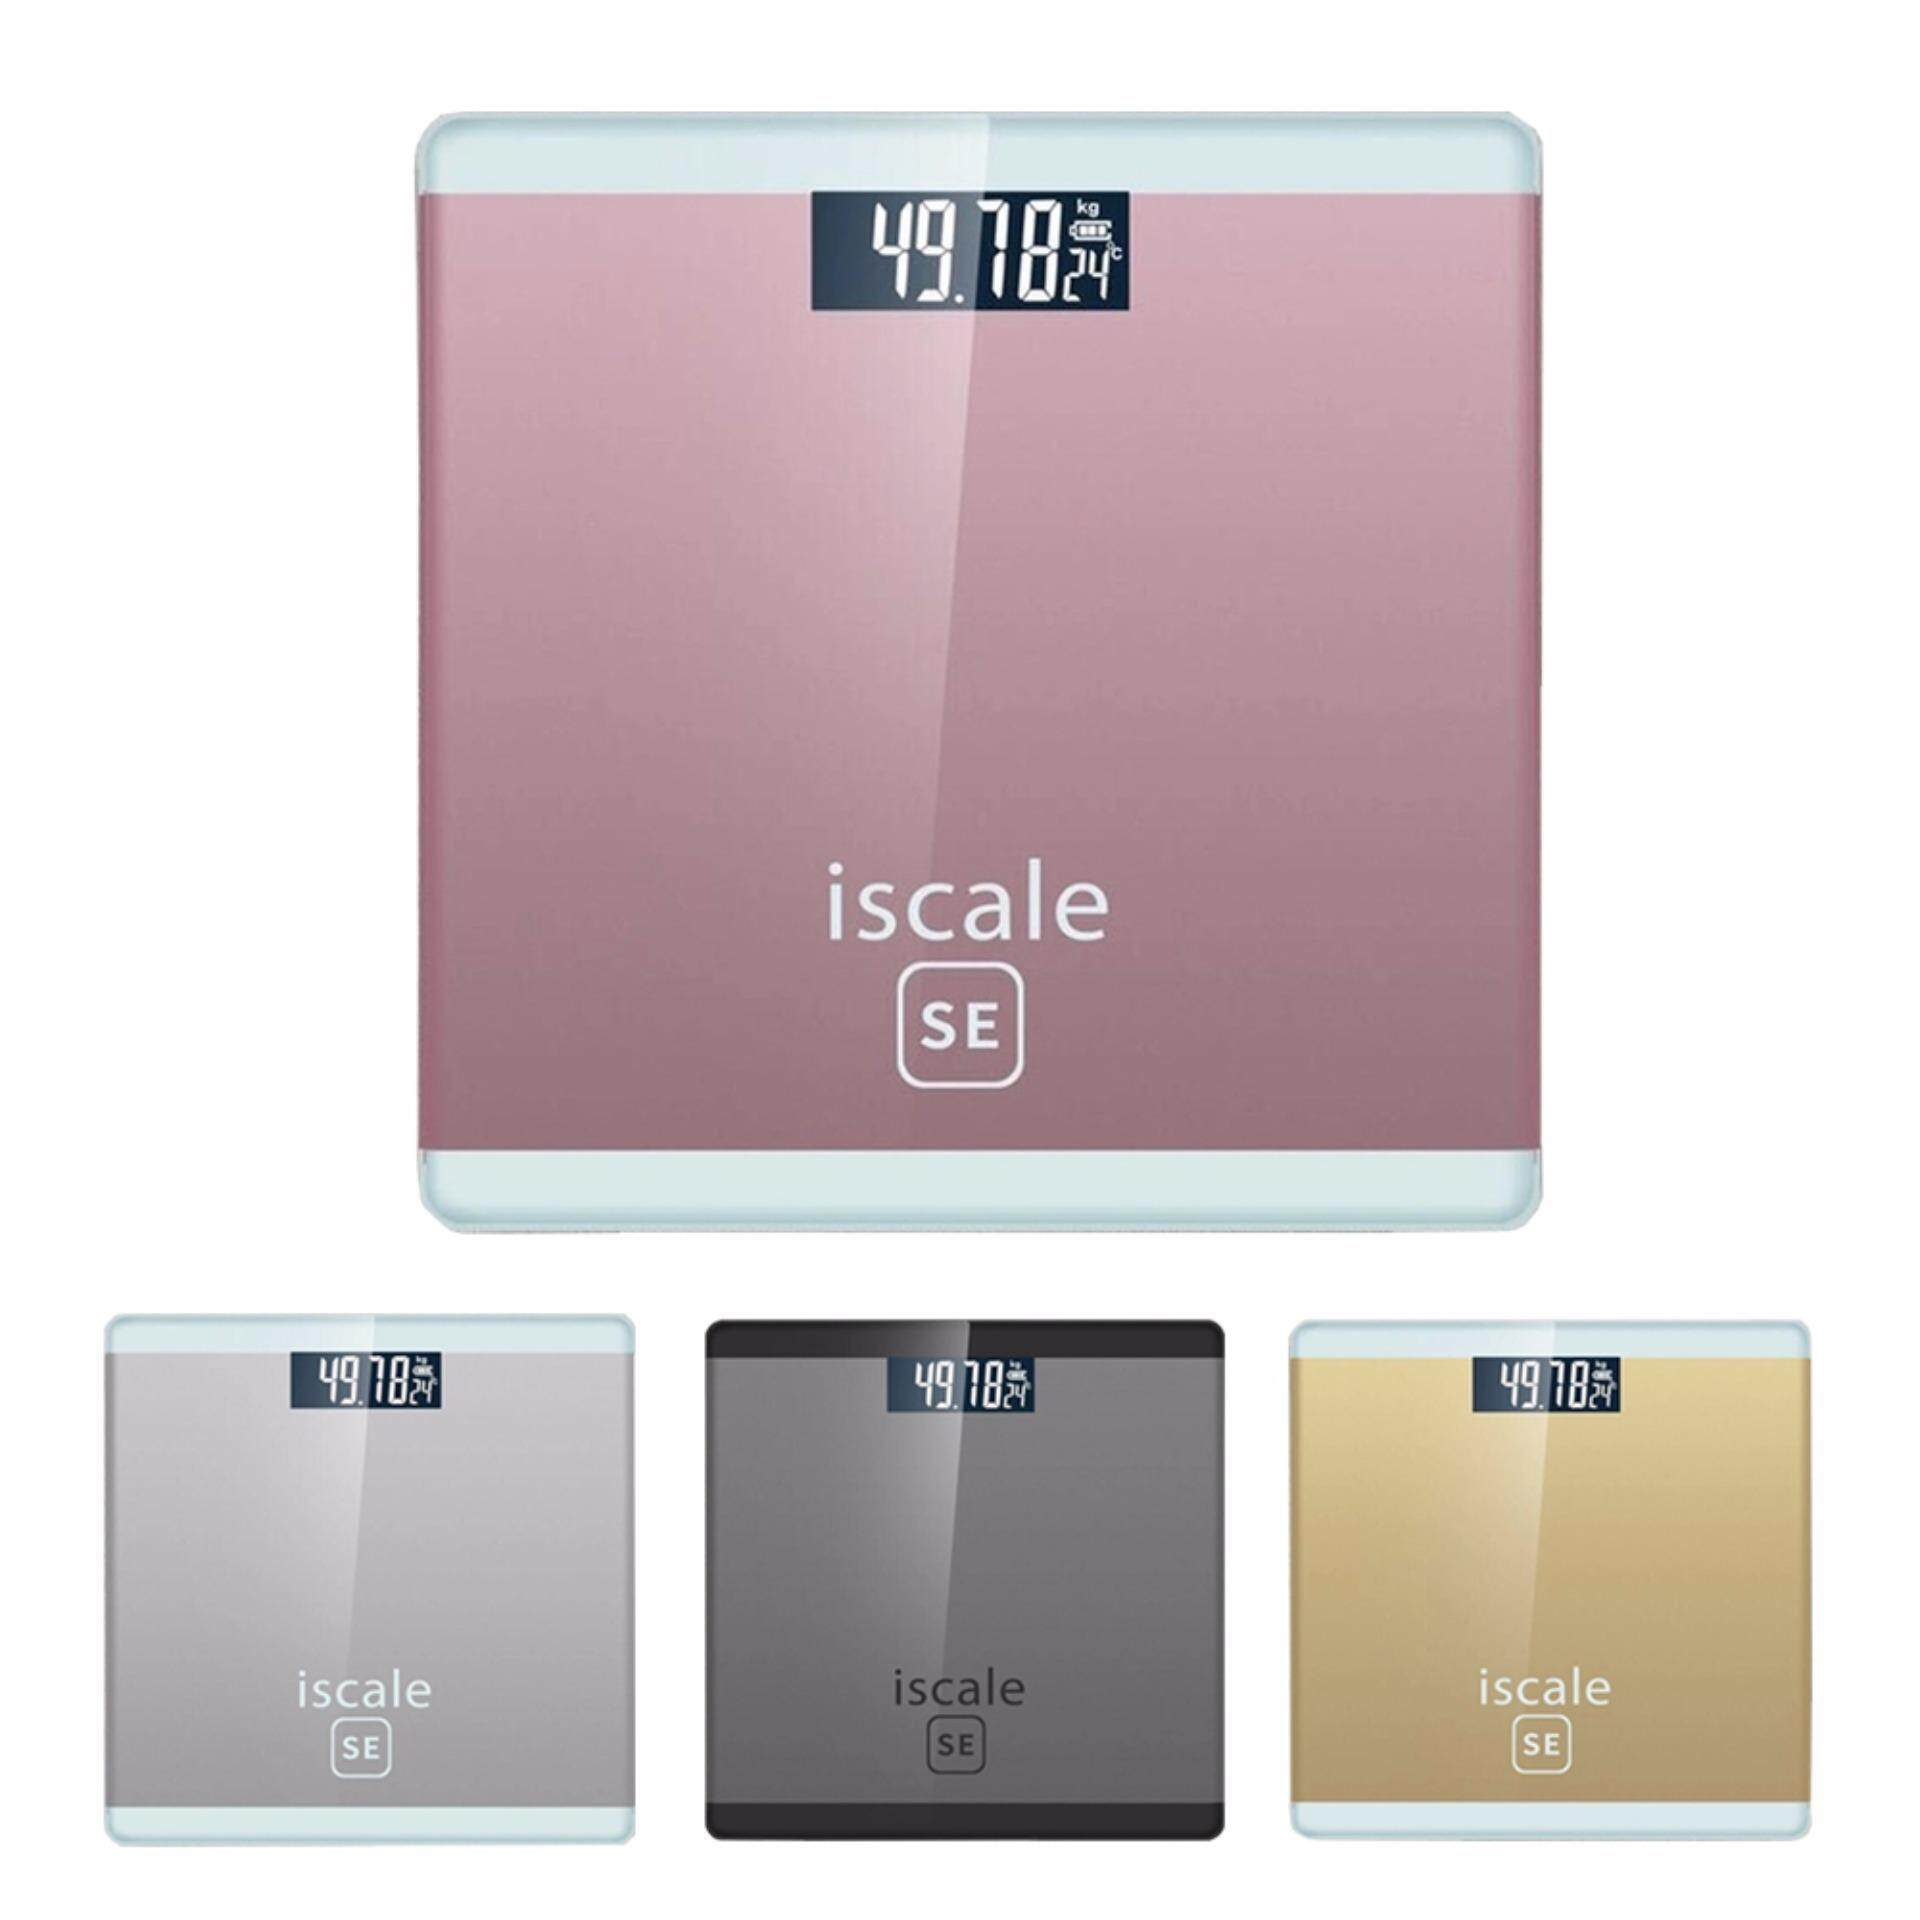 SANYANG Iscale SE Digital Scale High Accuracy Weight Scale - Black - intl